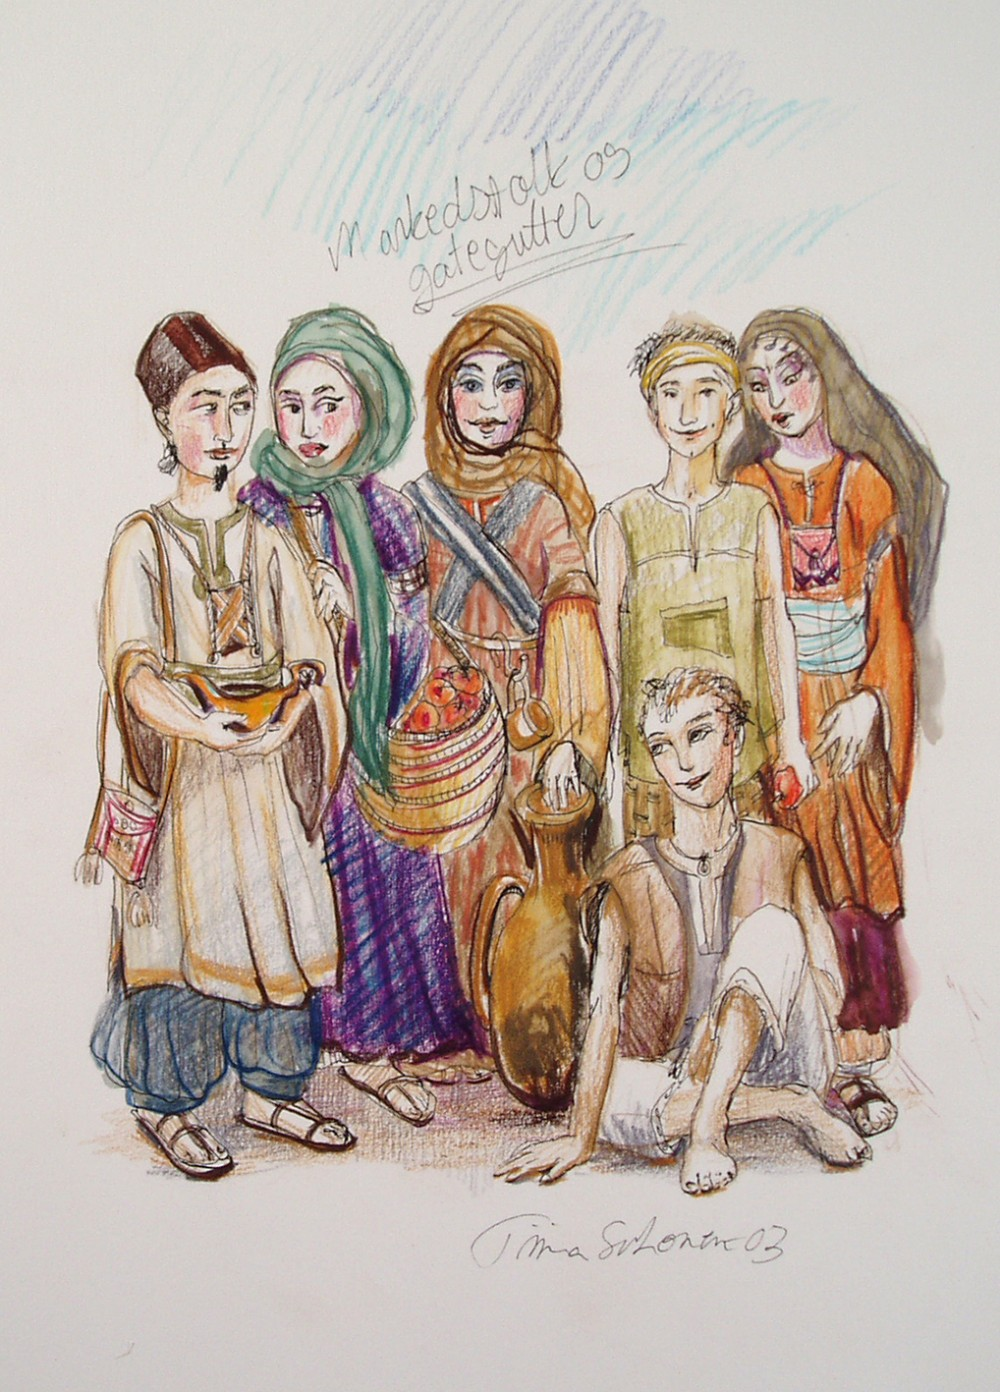 A multi-coloured sketch of market sellers in ancient Baghdad